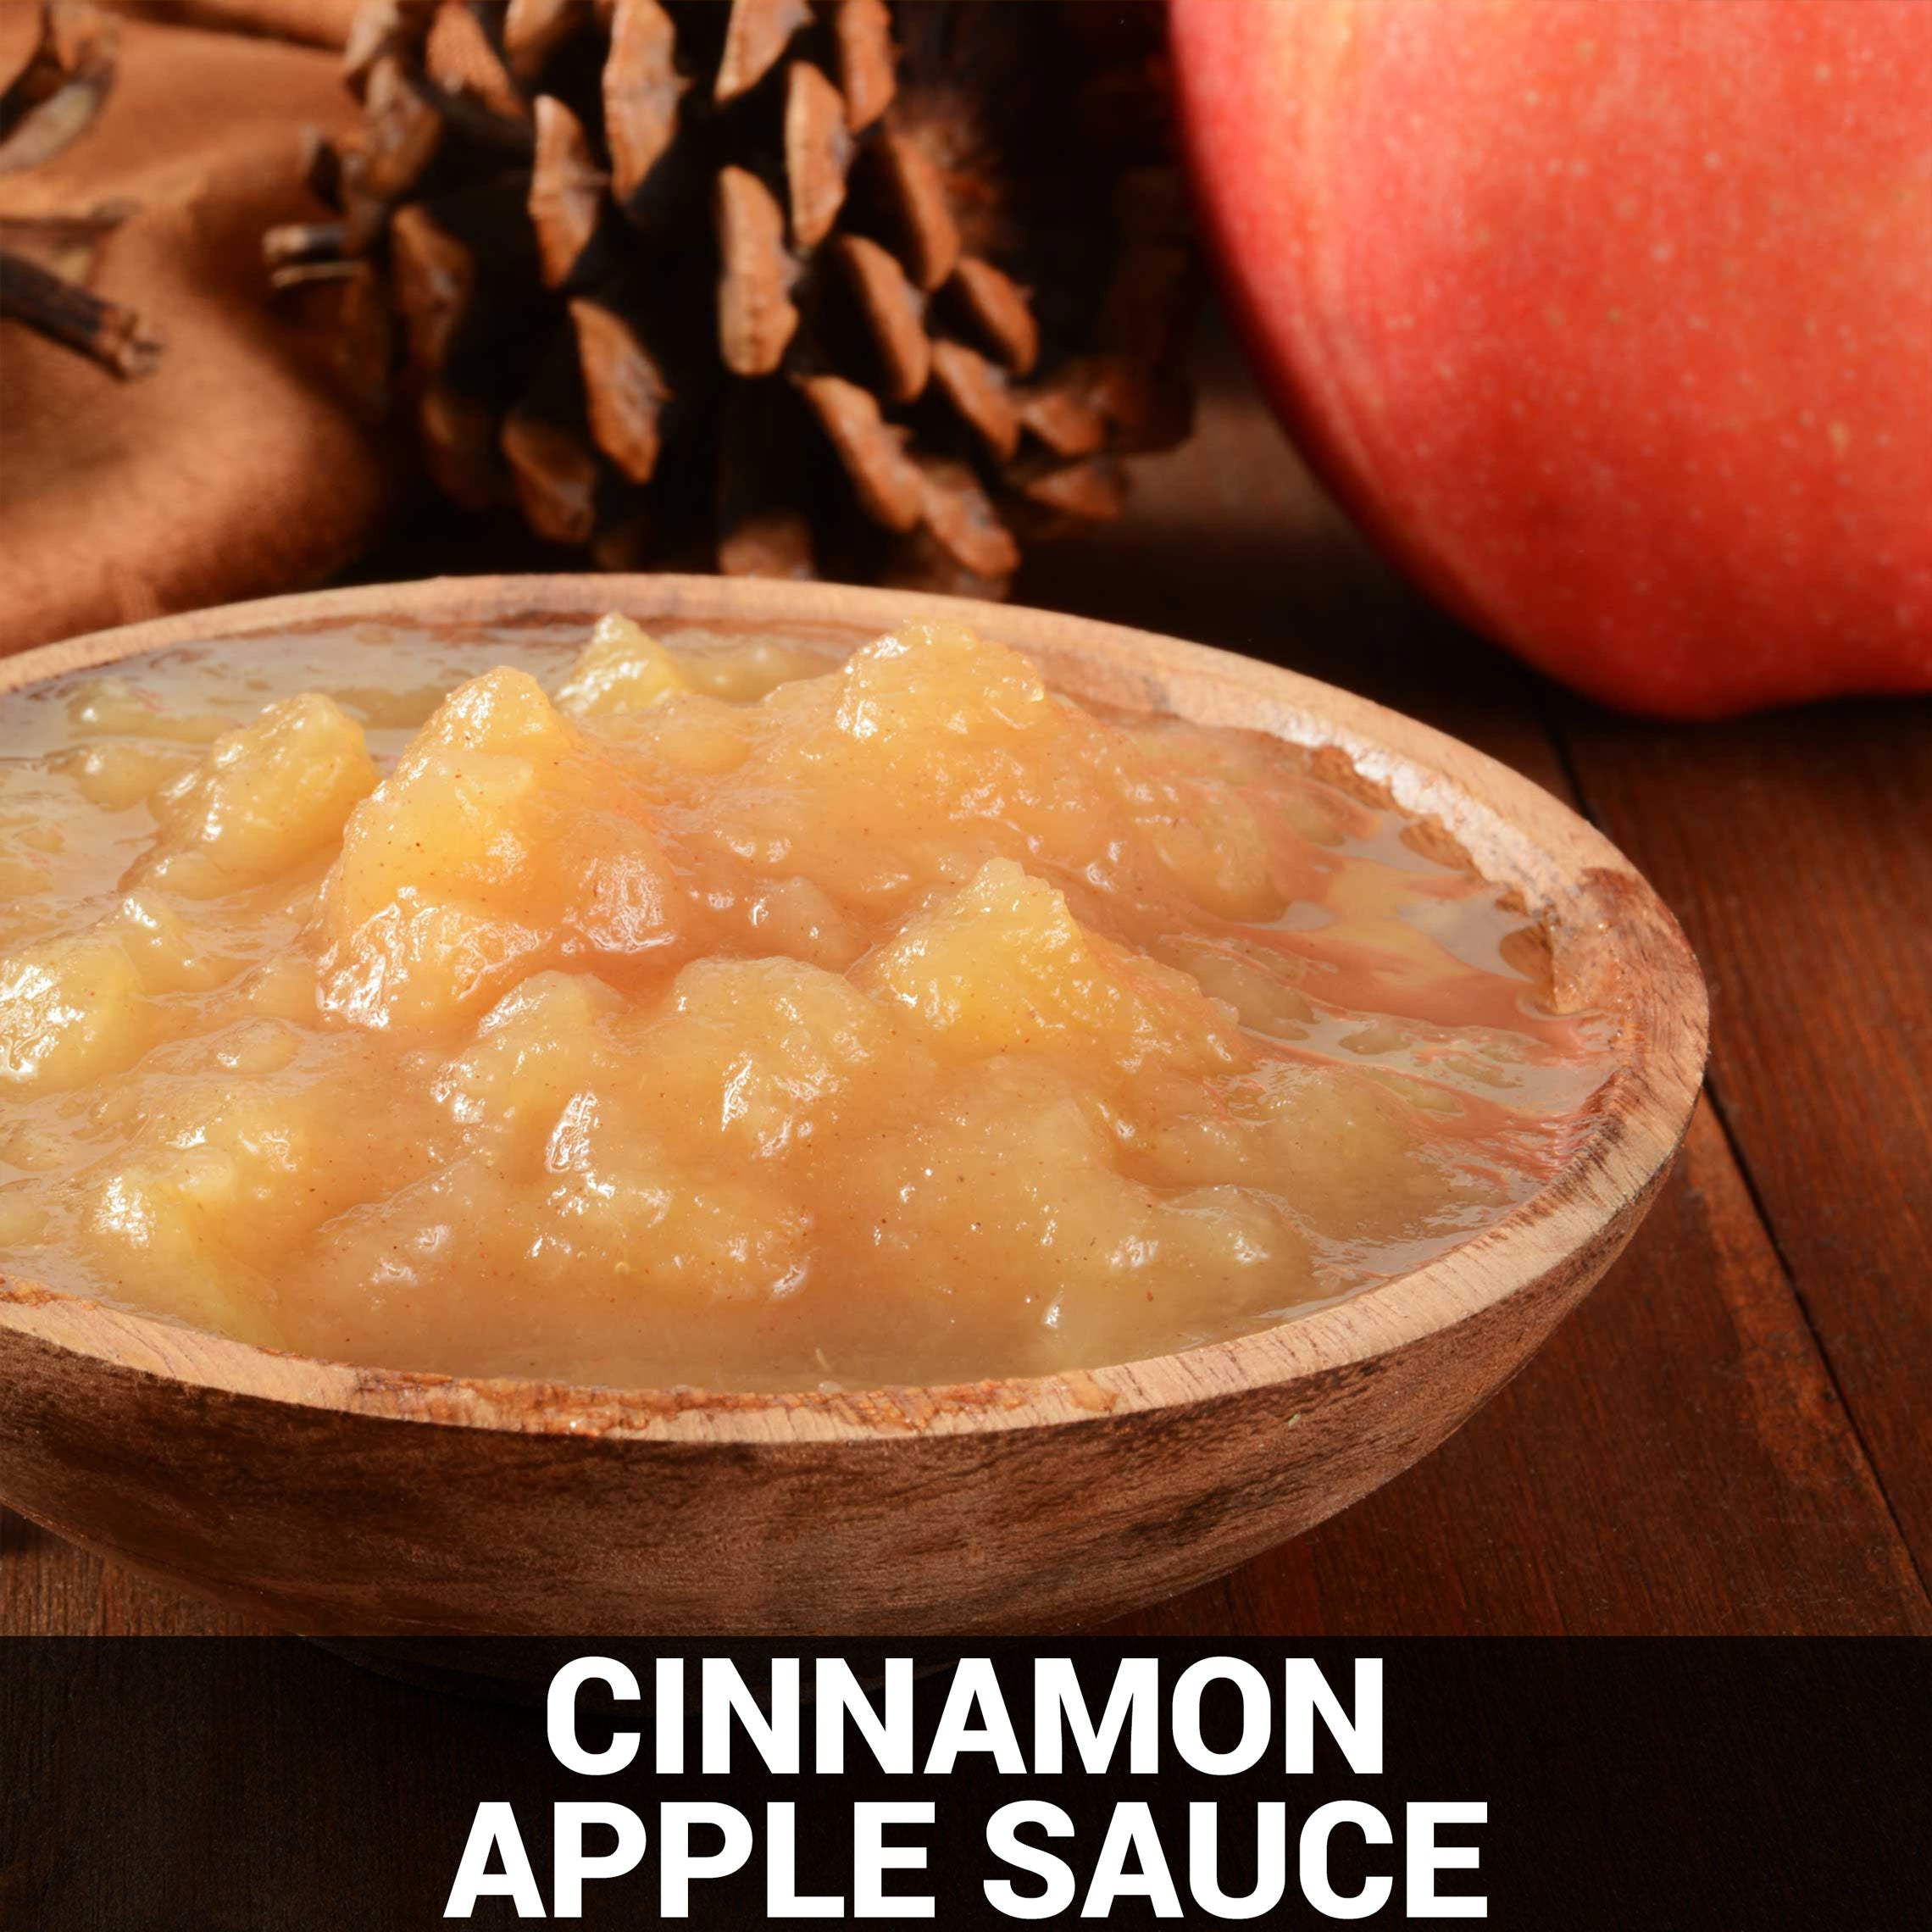 Cinnamon Apple Sauce Recipe - Foods Alive